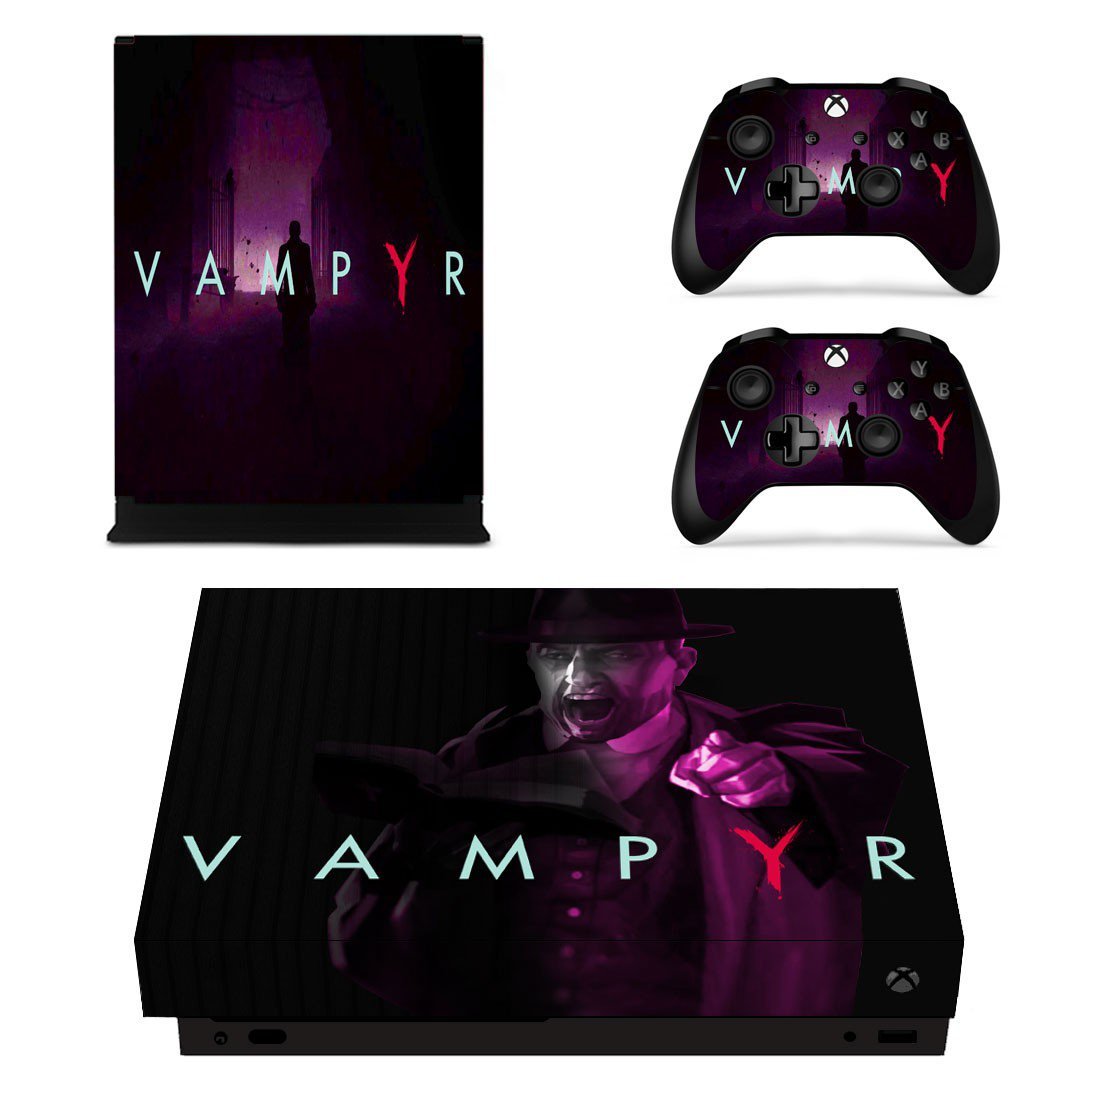 Vampyr decal skin sticker for Xbox One X console and controllers